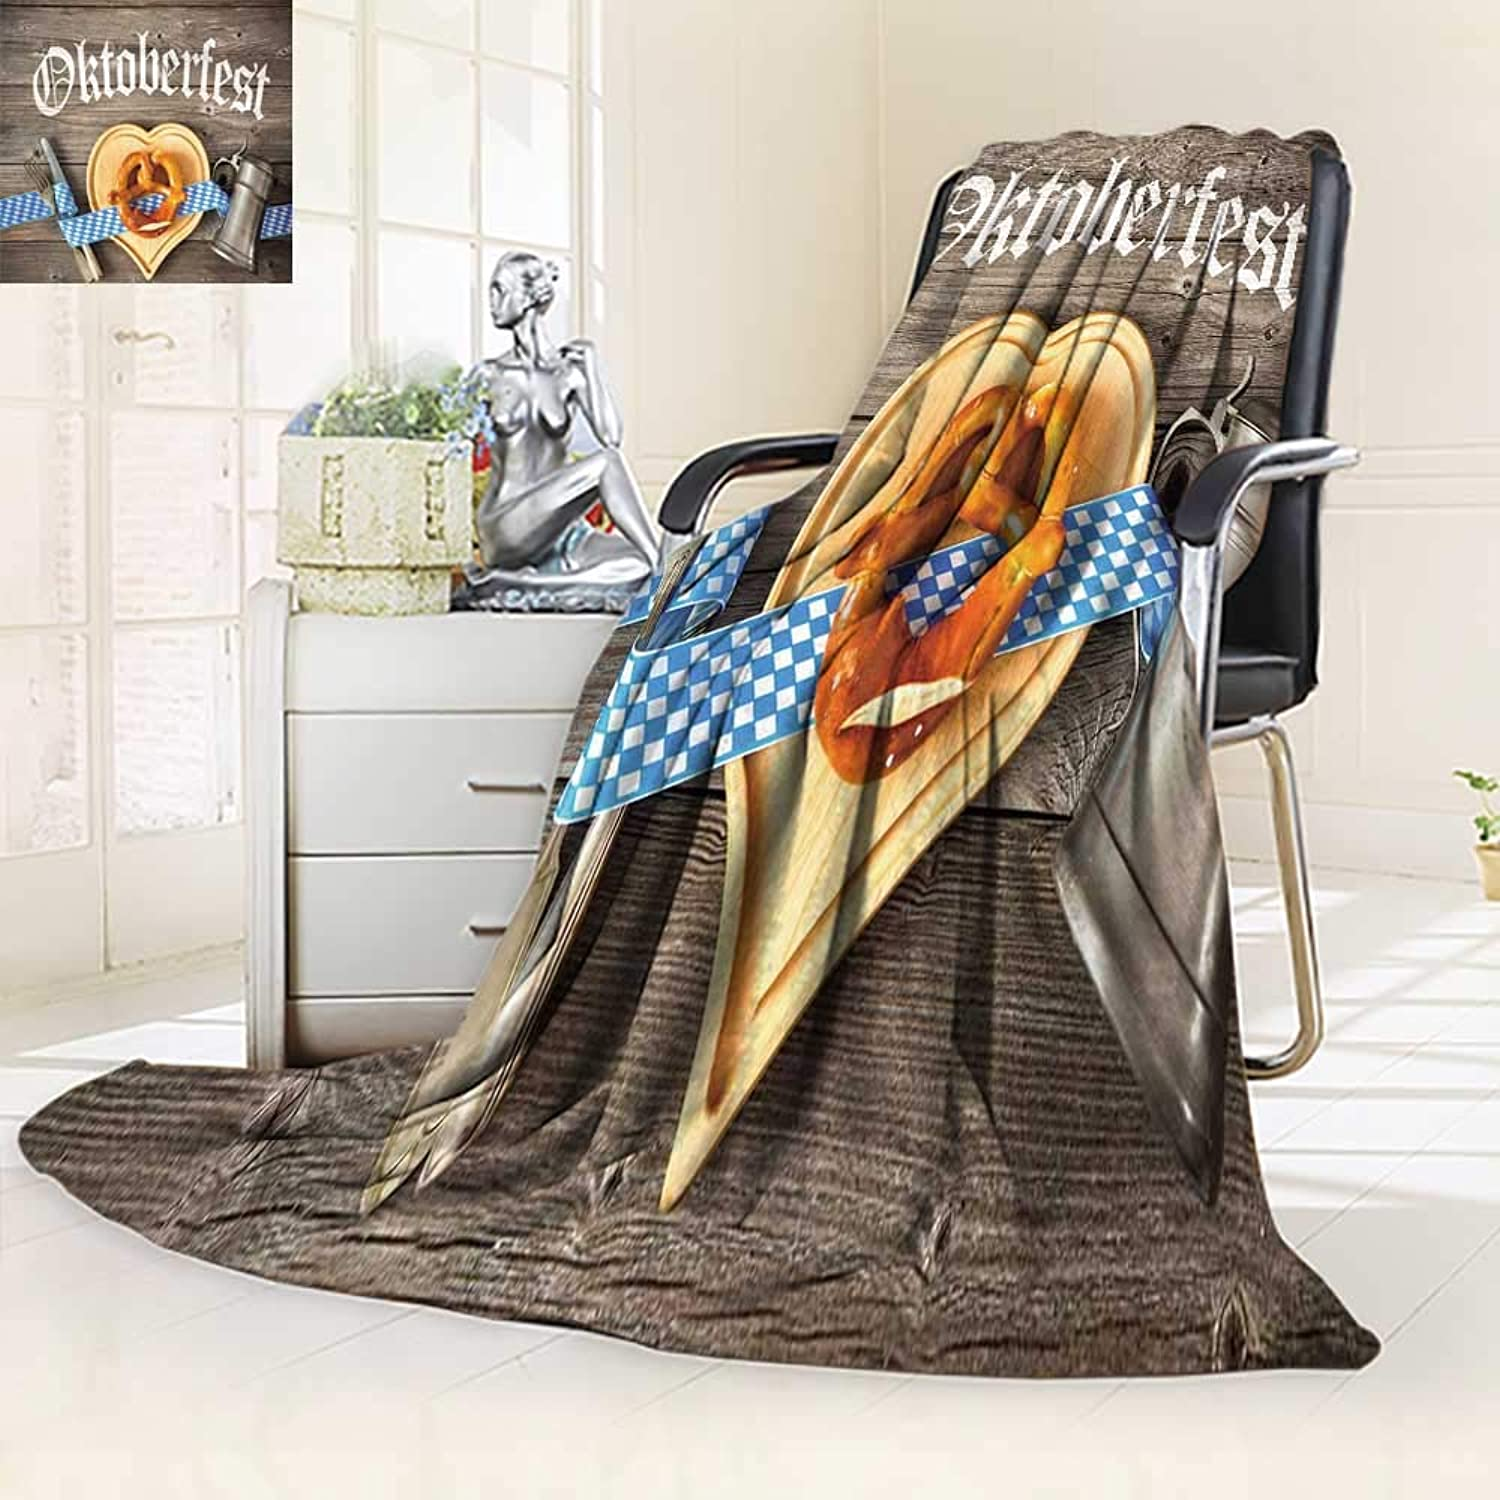 Decorative Throw Duplex Printed Blanket Oktoberfest Beer Festival Template  Home, Couch, Outdoor, Travel Use 39.5  W by 59  H